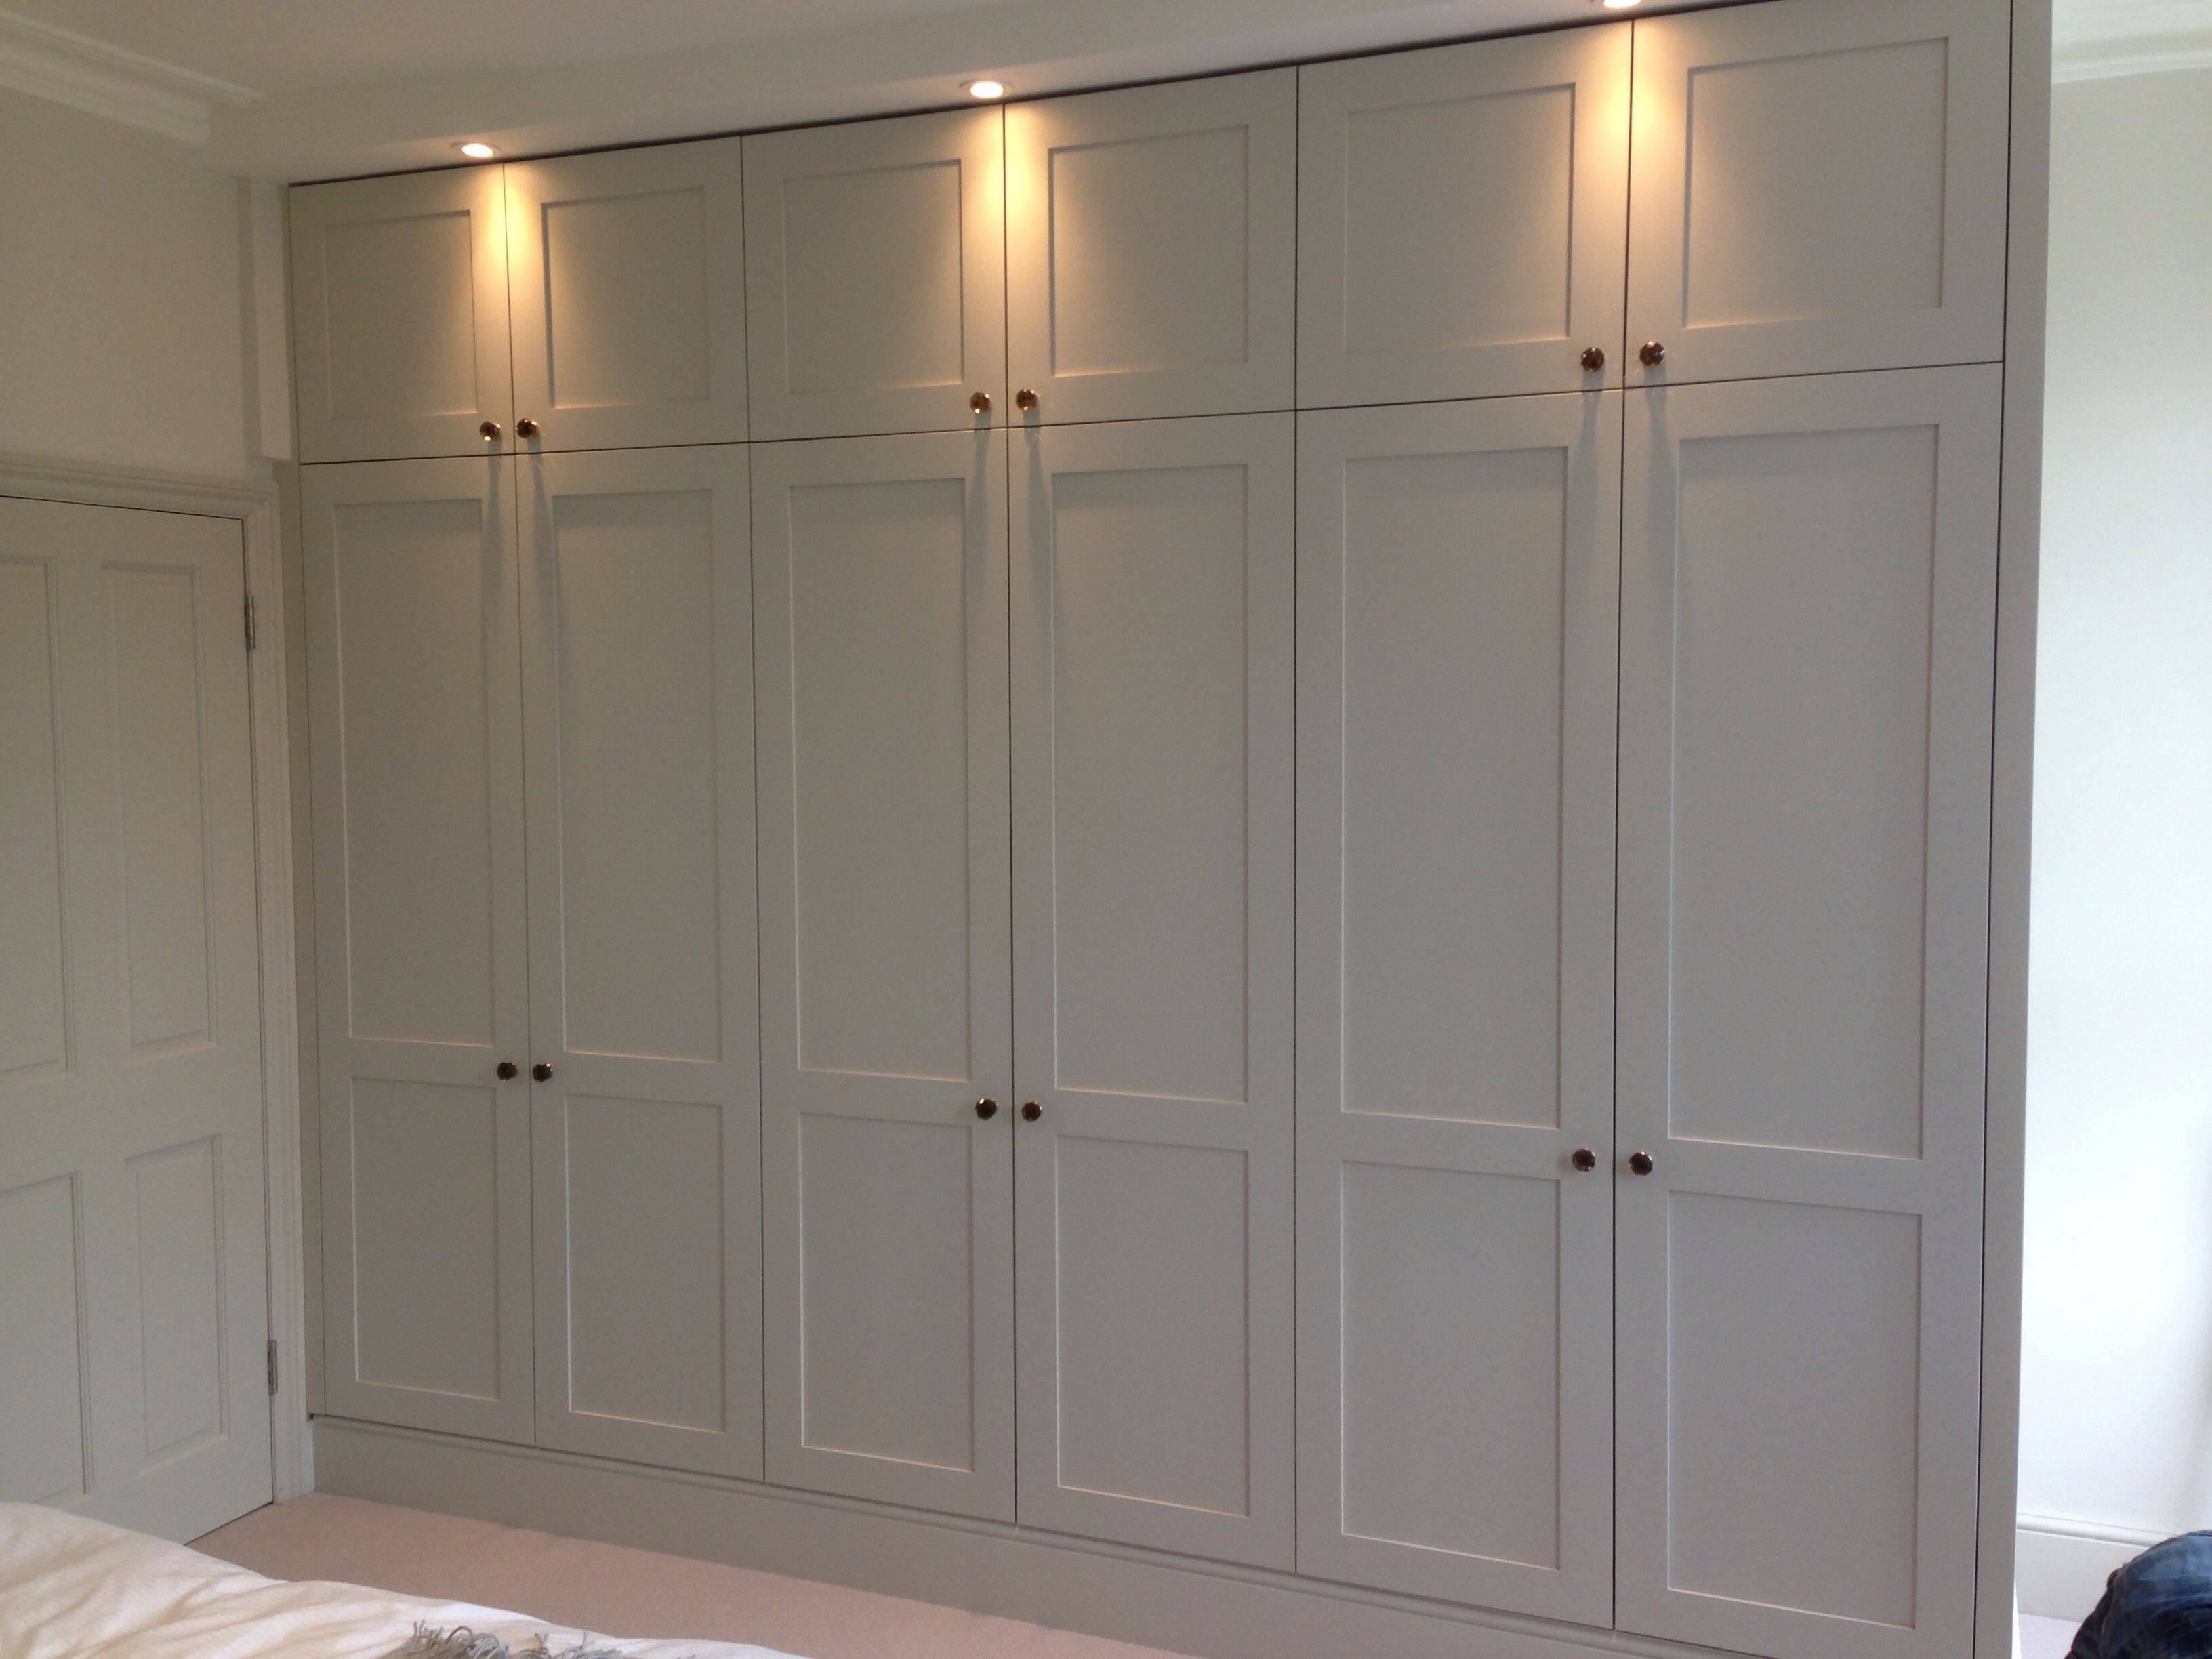 Bespoke Fitted Wardrobe By Fine Balance Carpentry In